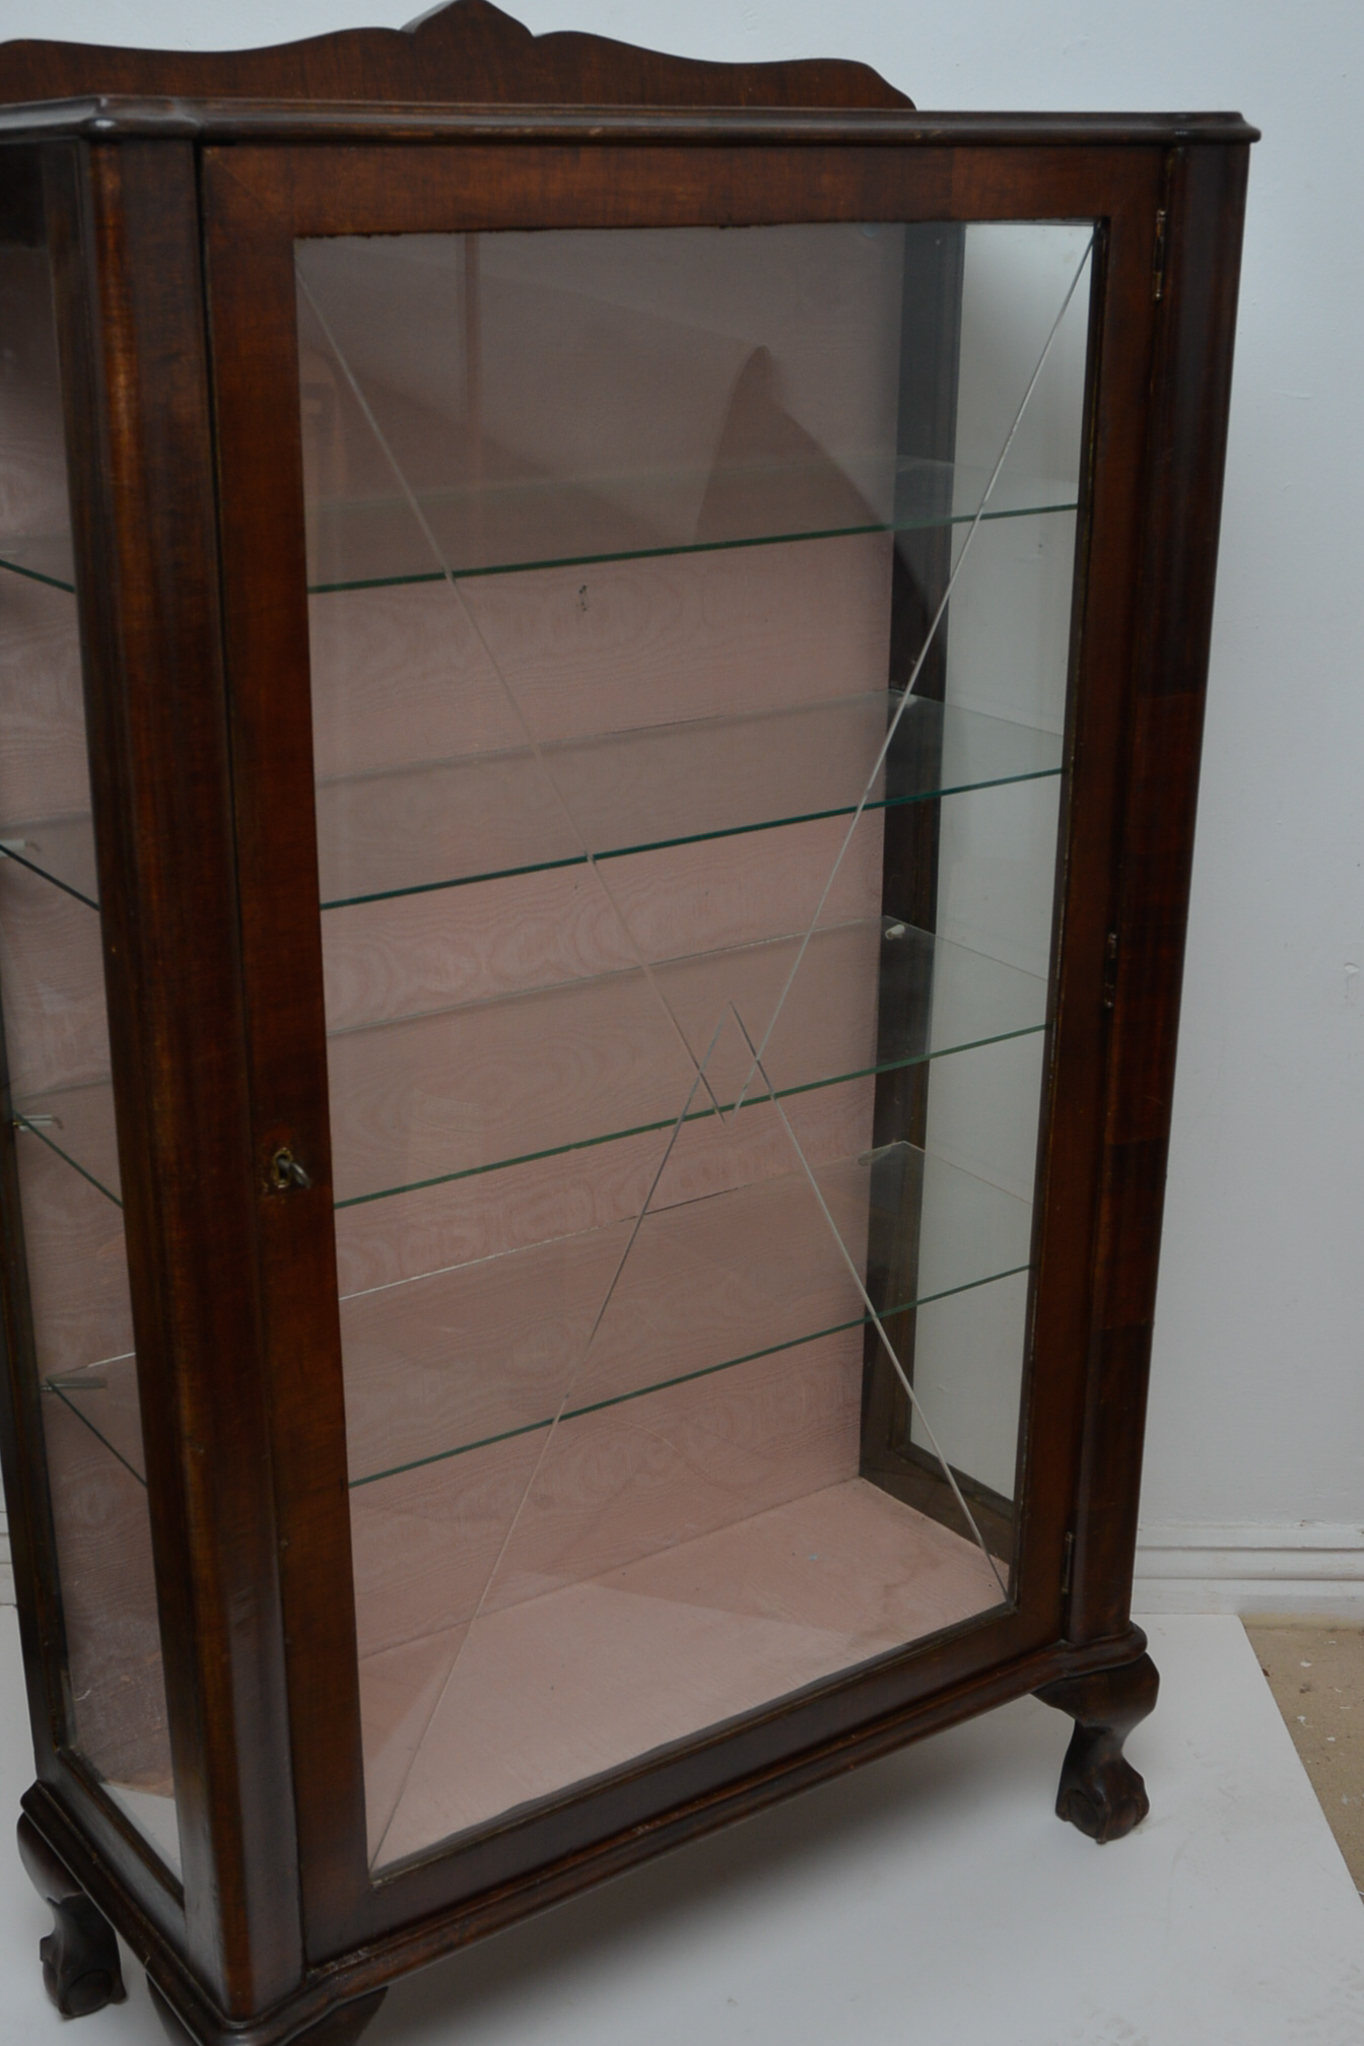 Lot 18 - Art Deco Bevel Etched Glass Fronted Walnut Display Cabinet.